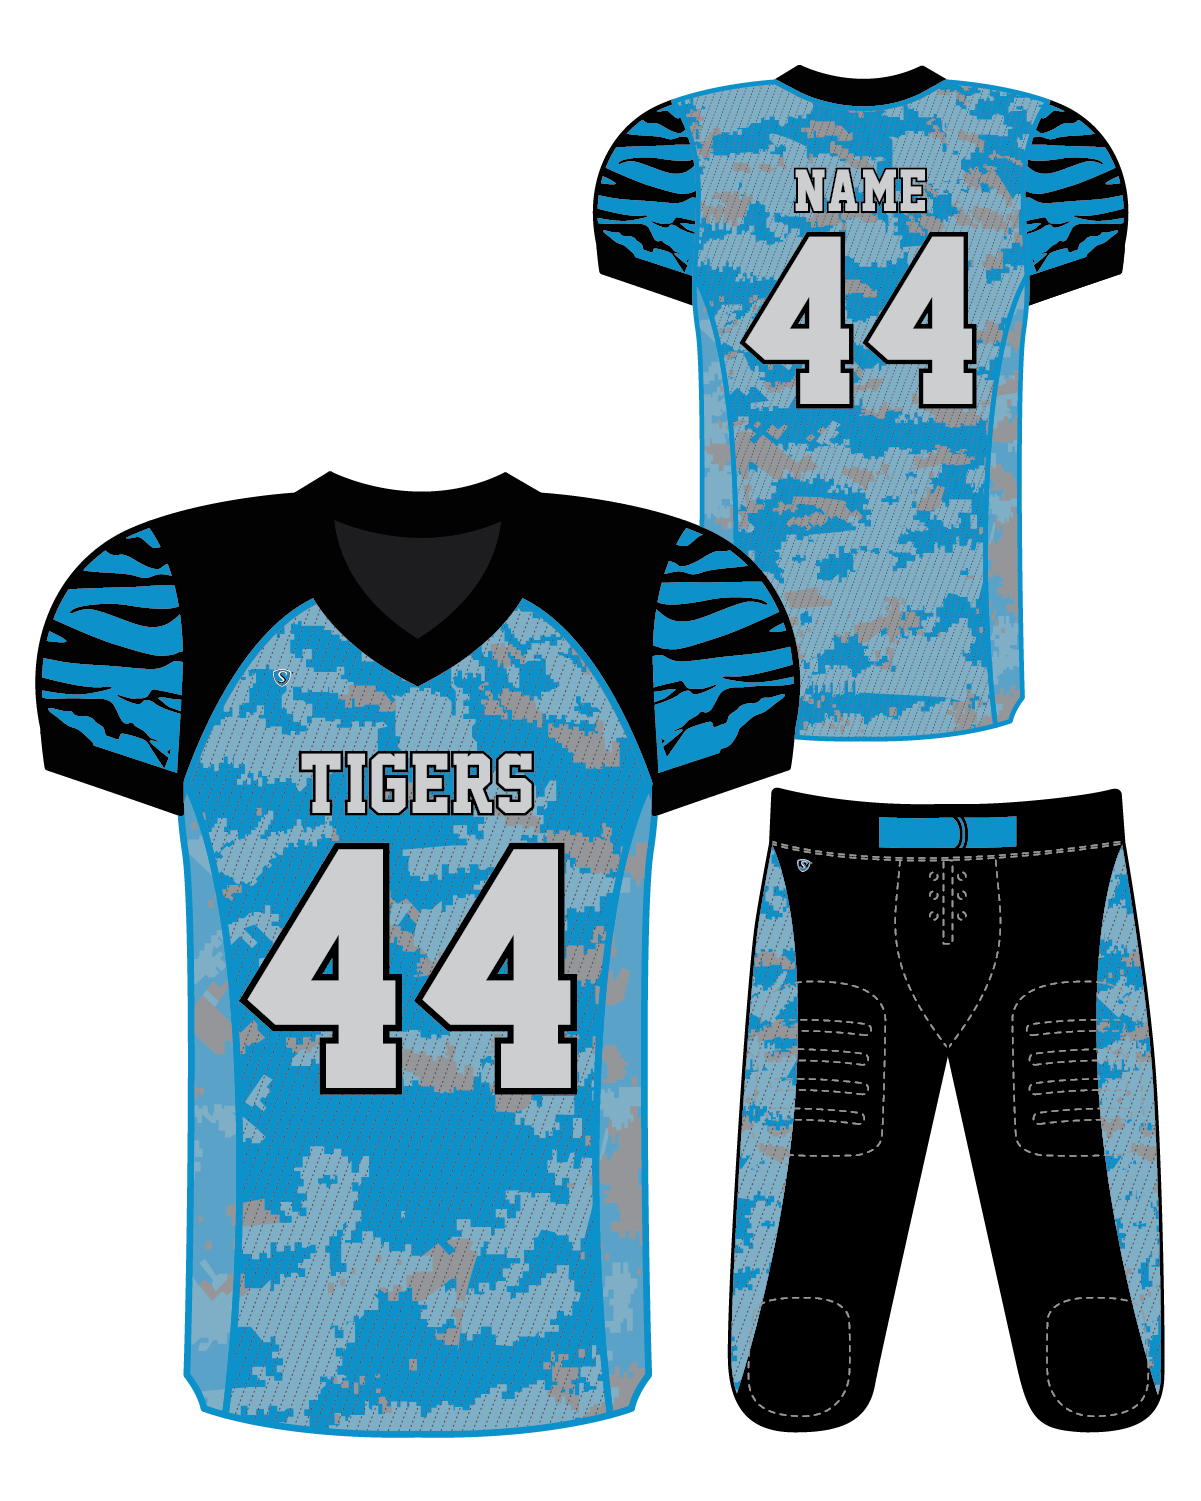 Sublimated Jersey - Tigers